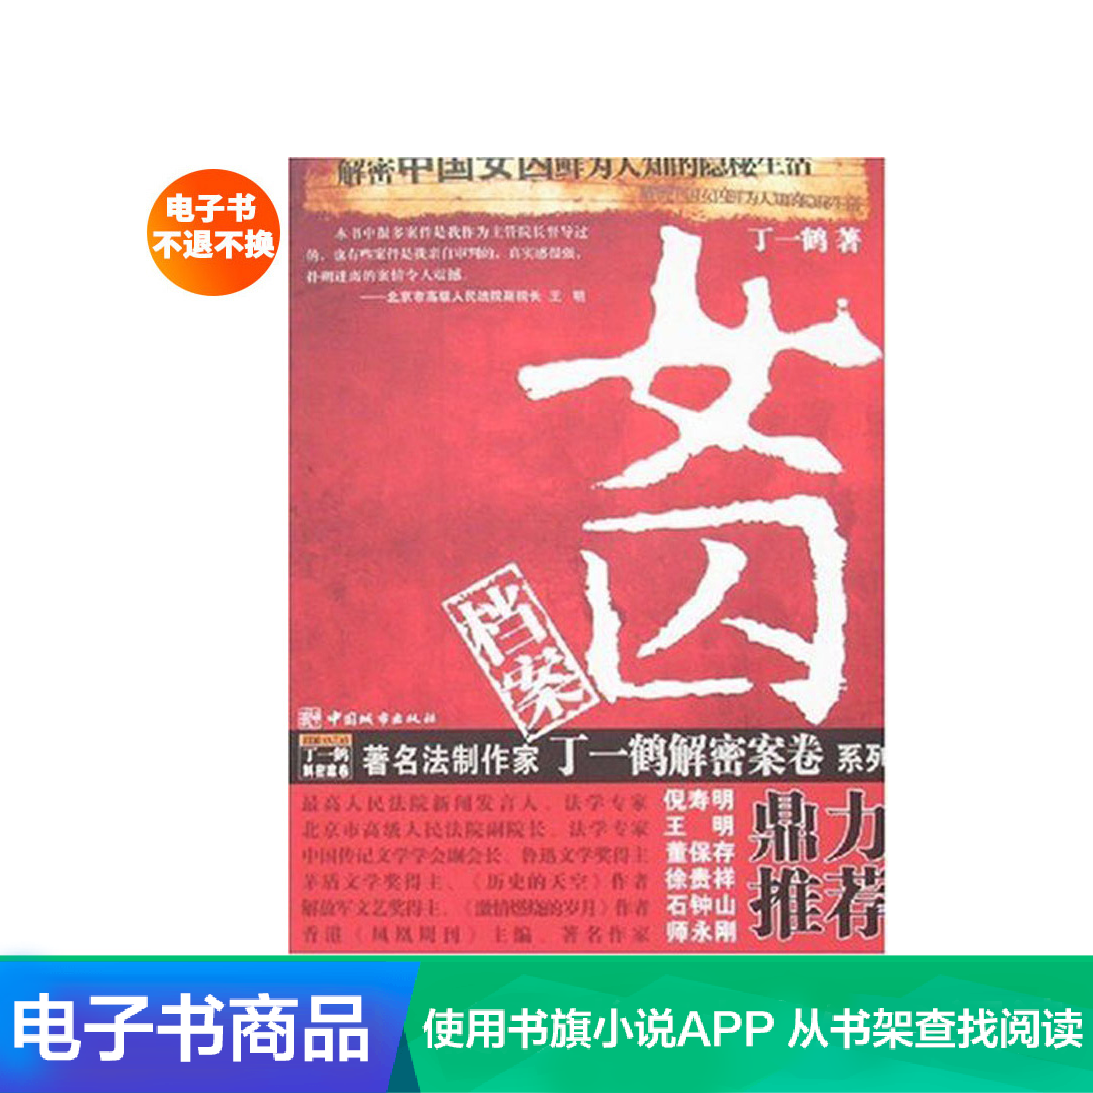 Womens prison files Ding Yihes reading the e-book of contemporary womens crime case documentary Reportage